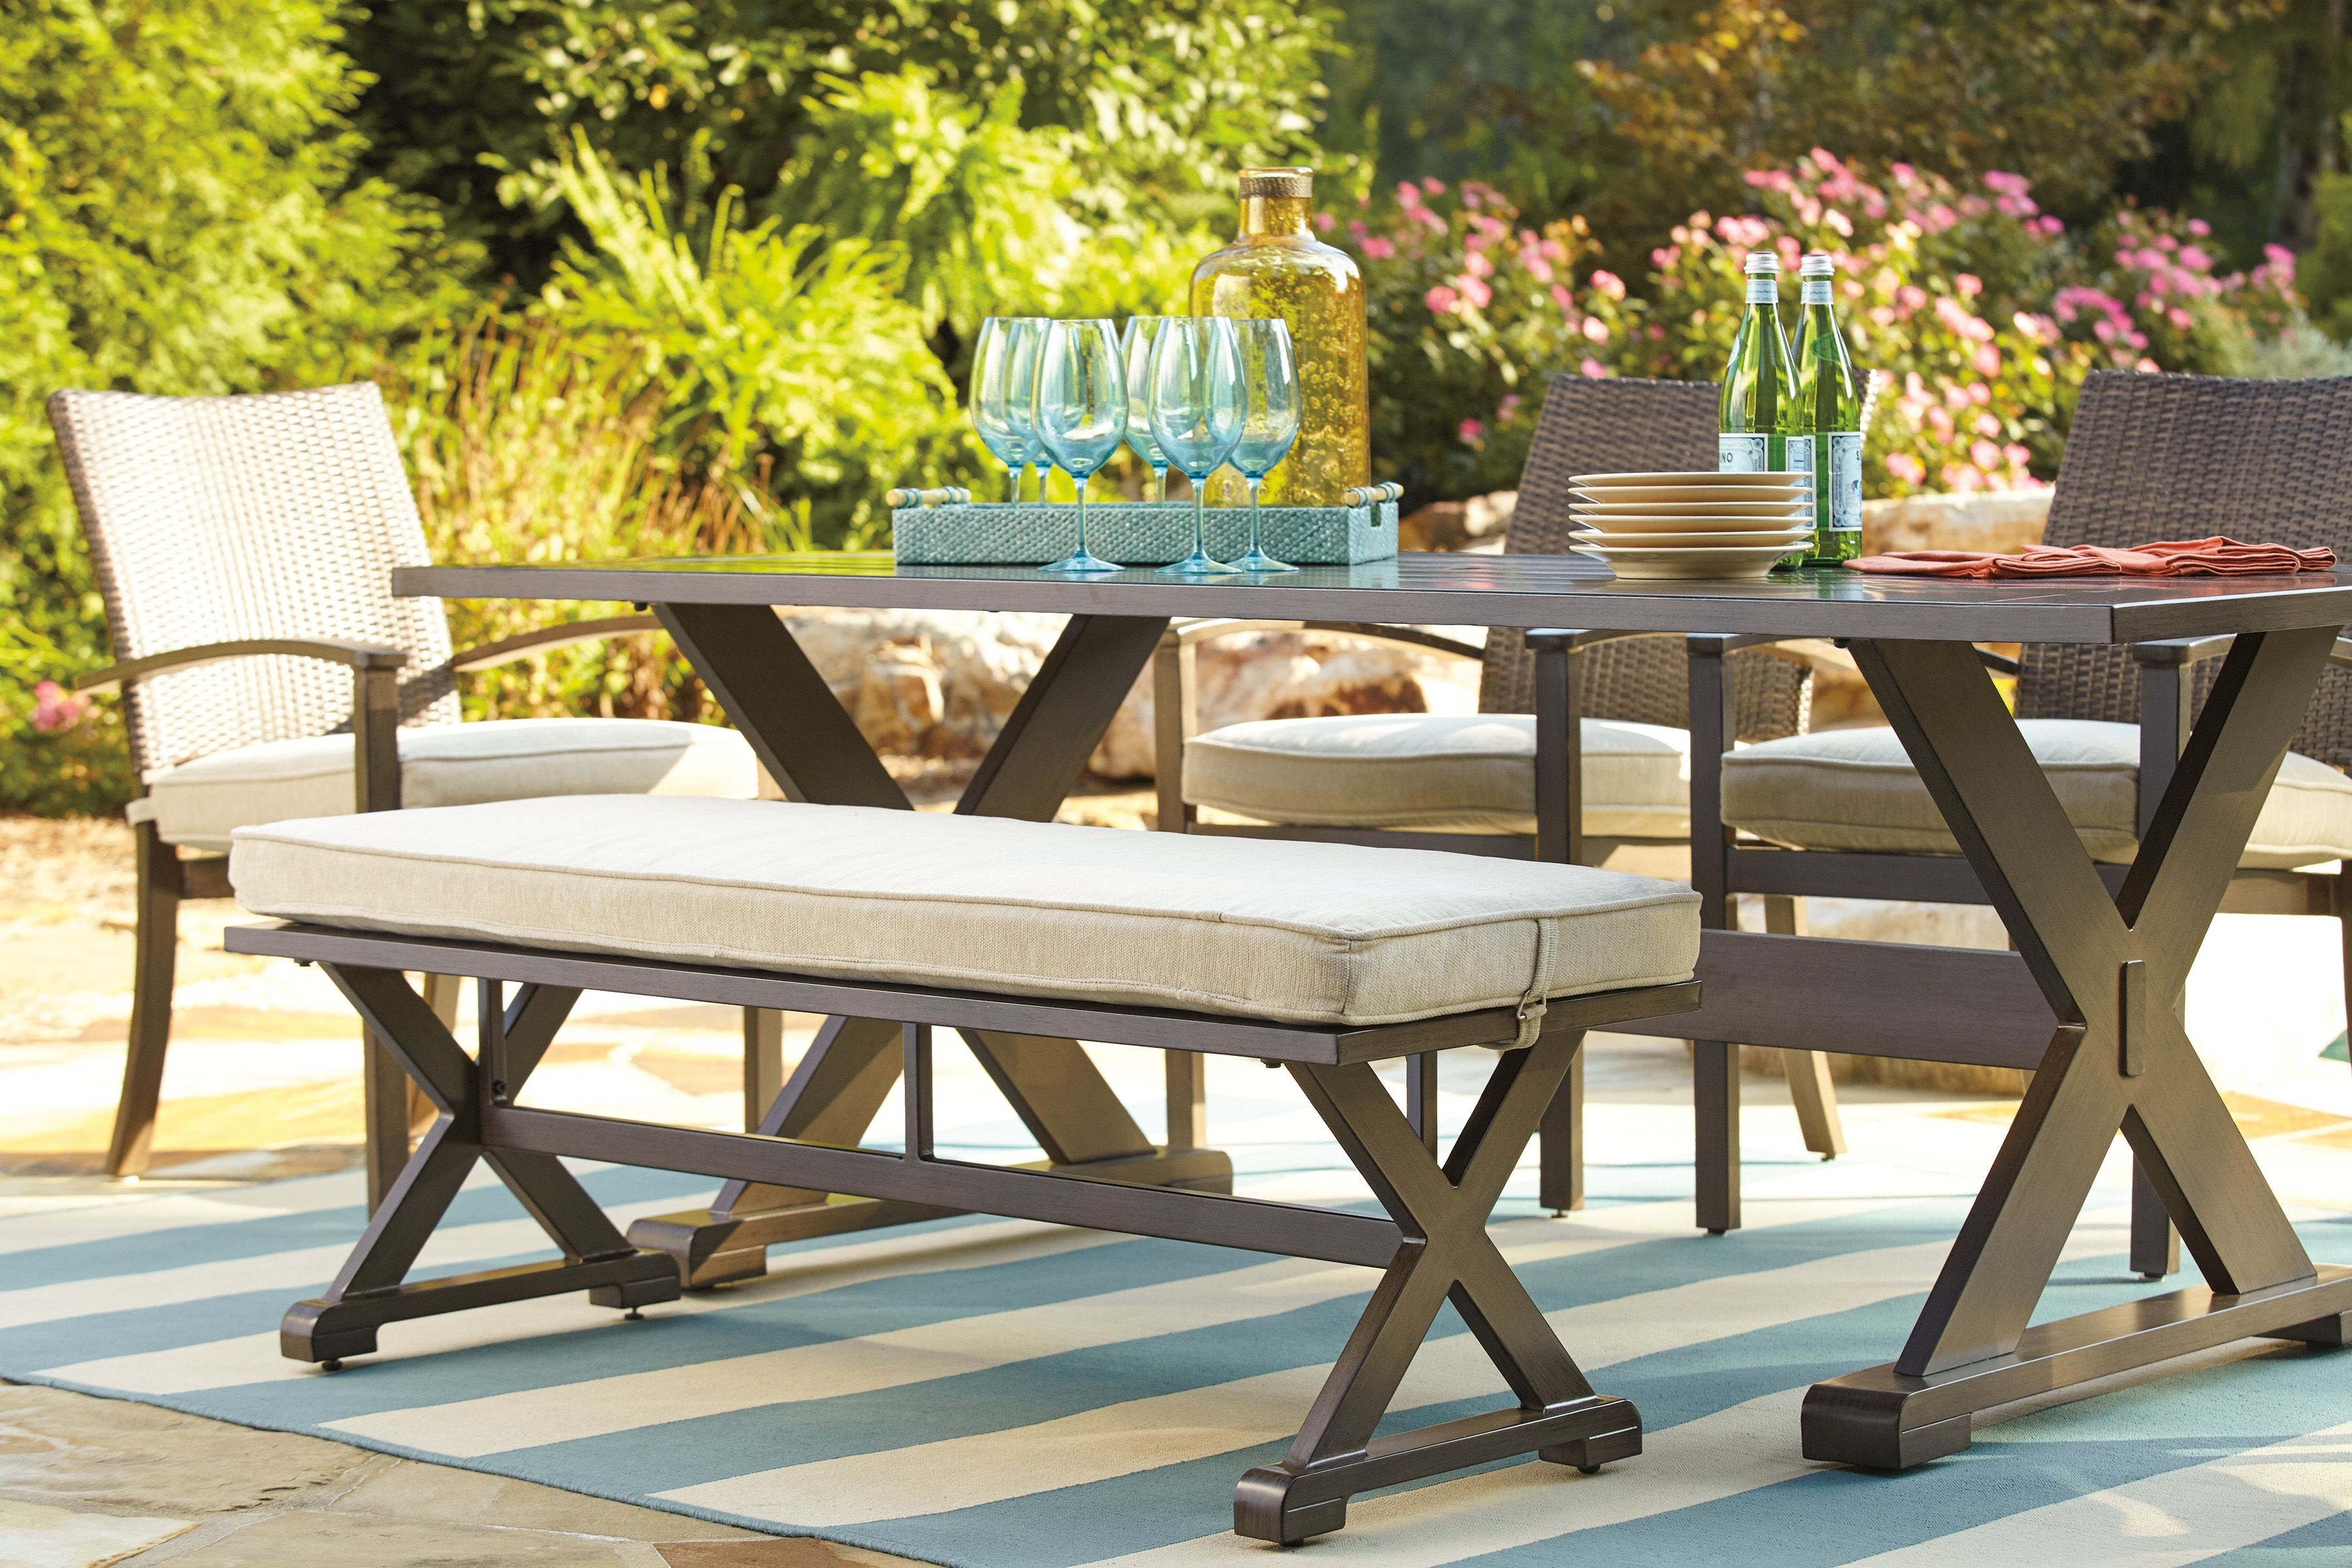 Sweet Dreams Are Made Of This Summer Outdooroasis Outdoorfurniture Outdoor Furniture Rustic Outdoor Furniture Metal Outdoor Furniture